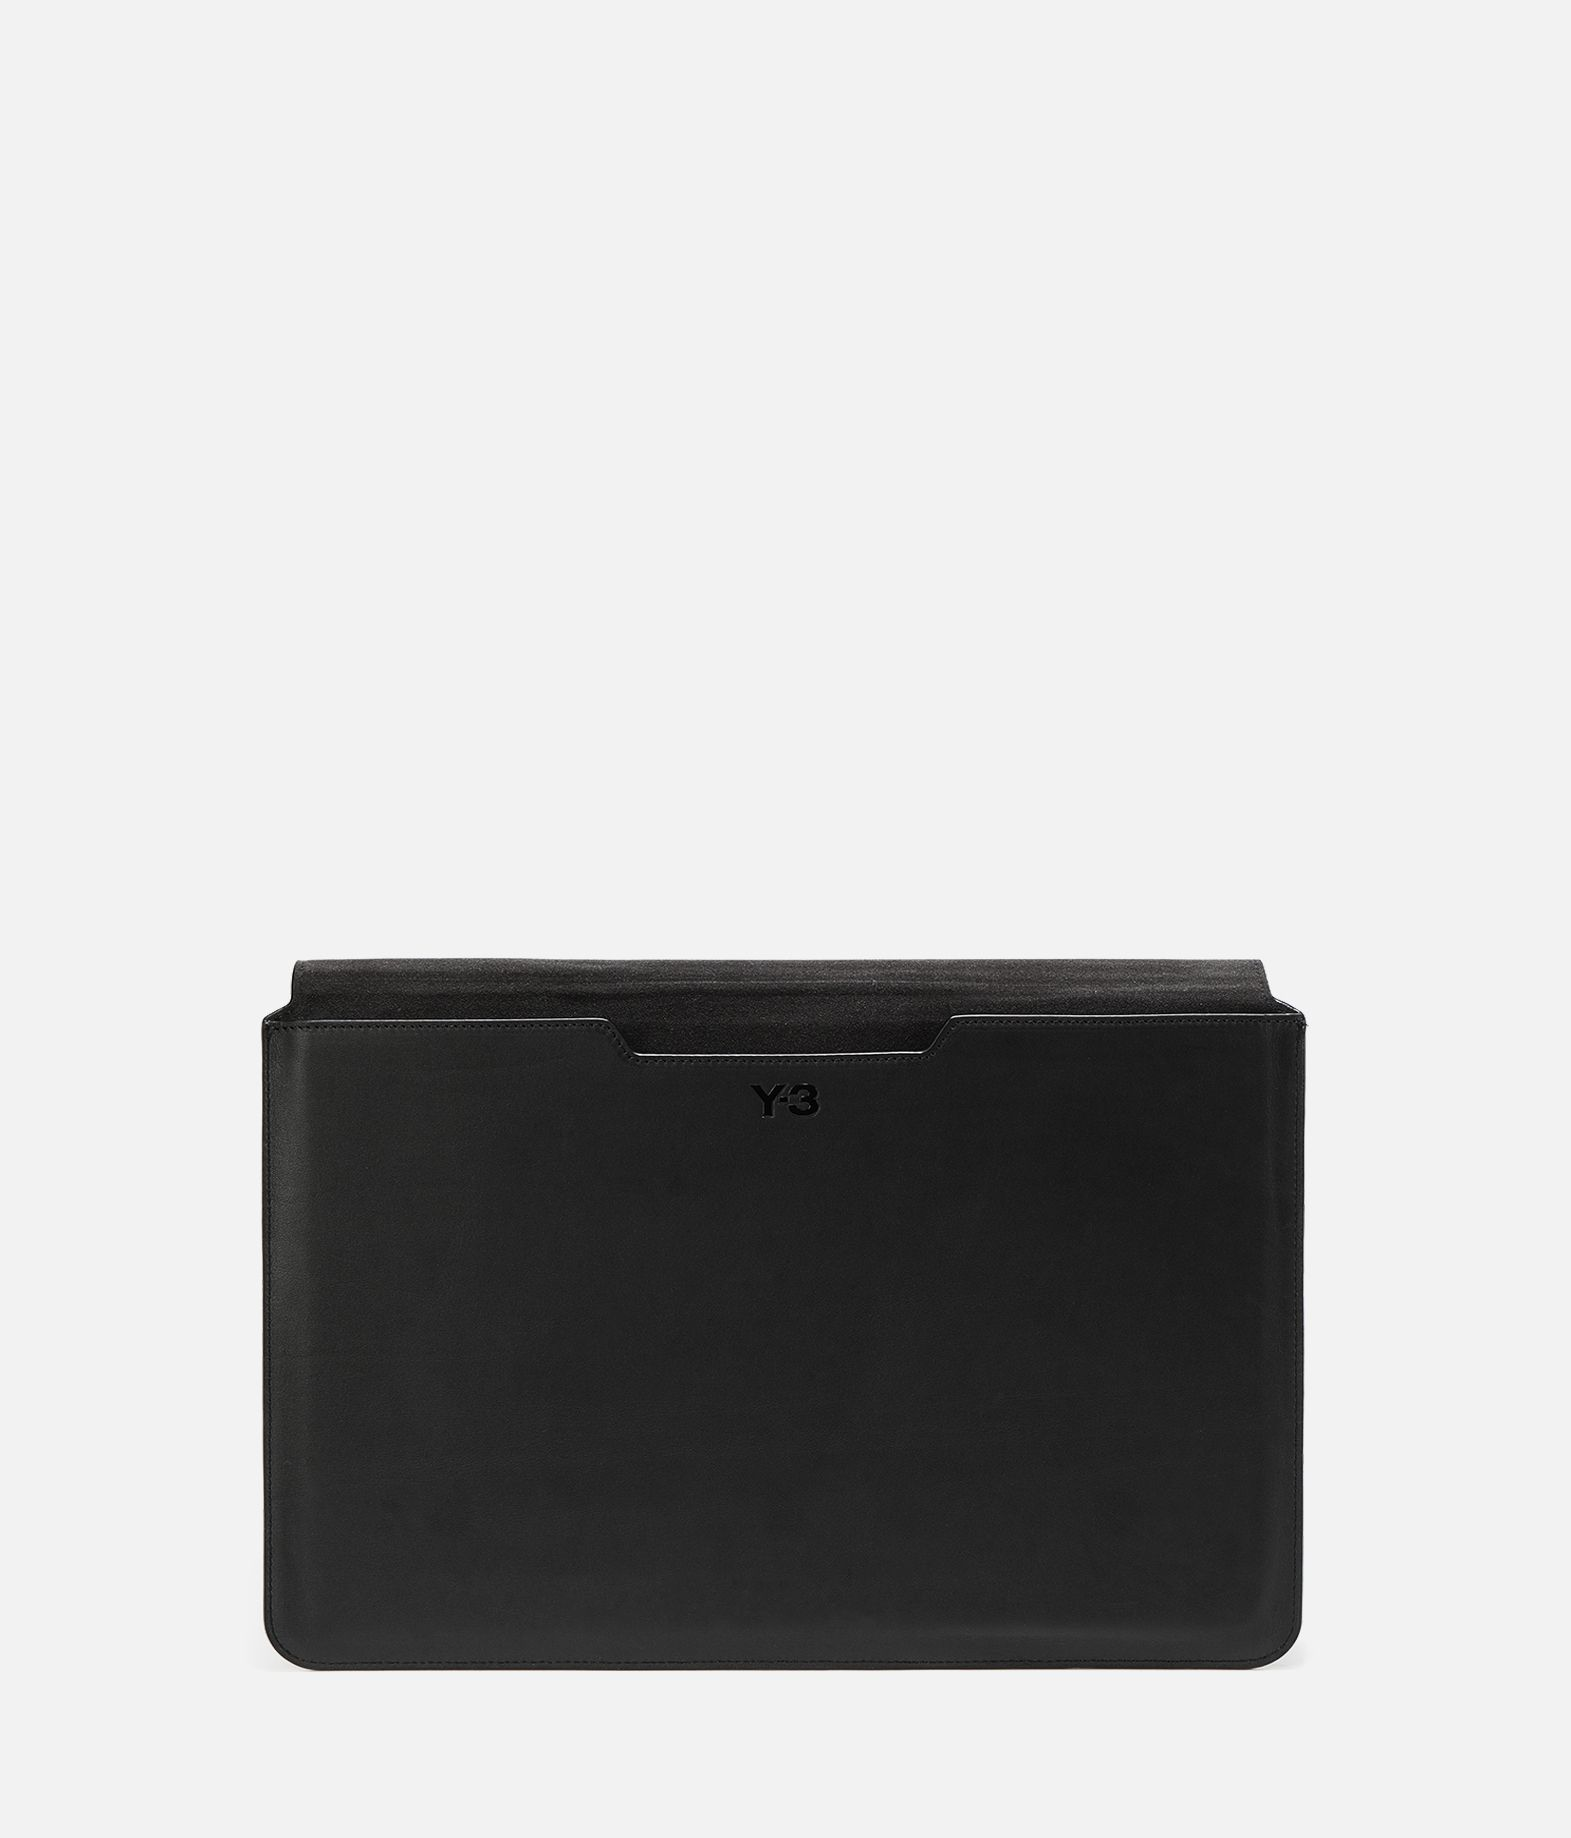 "Y-3 Y-3 Laptop Sleeve 13"" Laptop Sleeve E d"